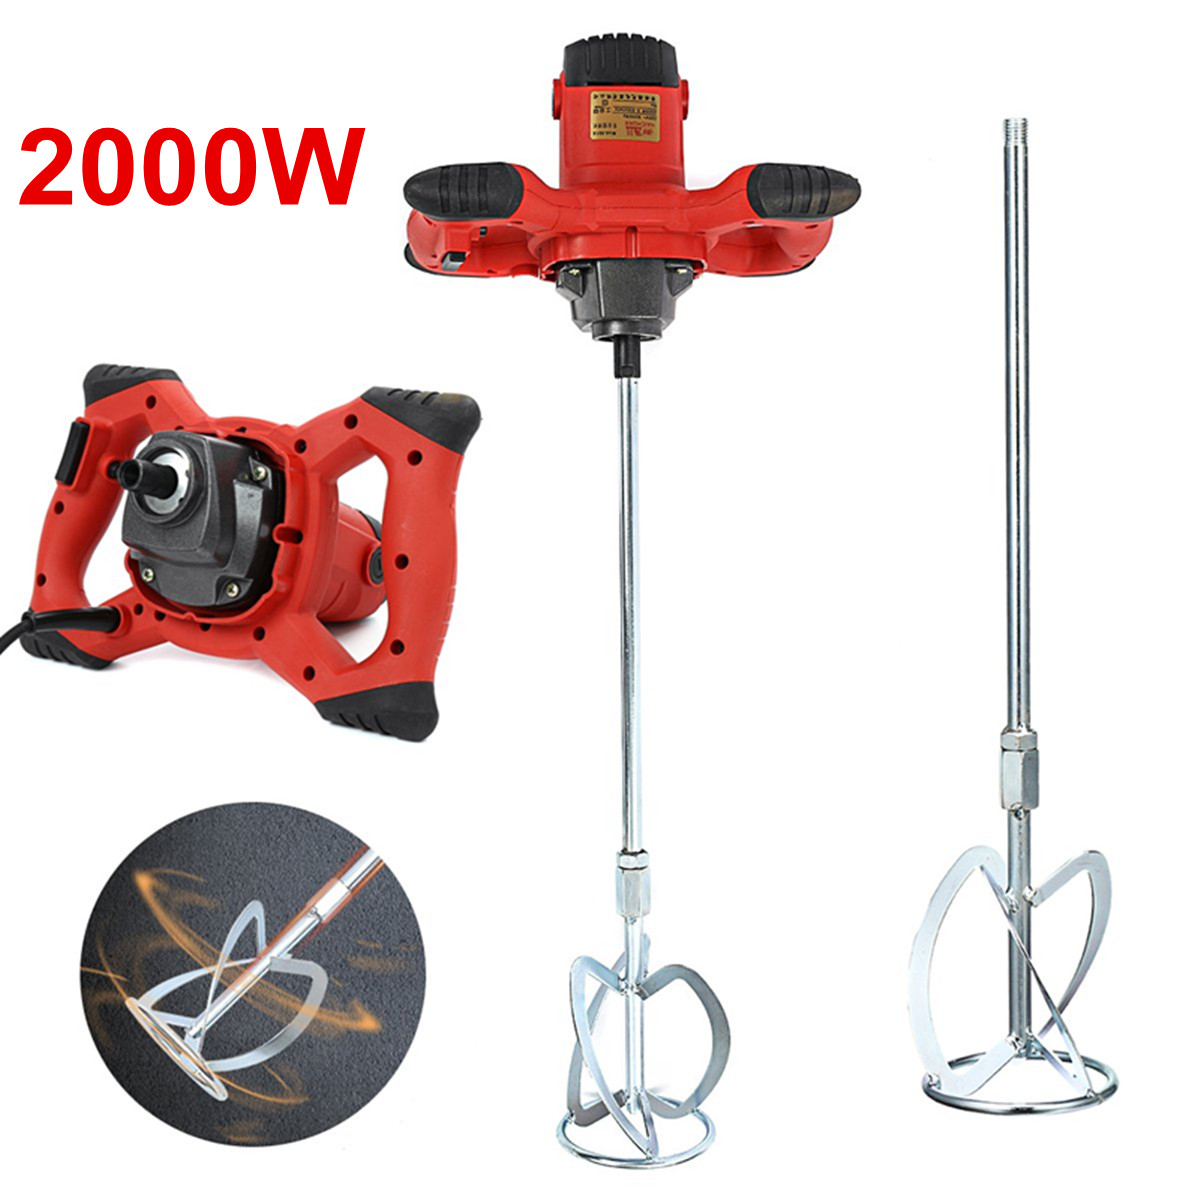 2000W 220V Major Handheld 6-speed Electric Cement Mixer For Stirring Mortar Paint Cement Grout For Mixing Feed Food Paint Cement